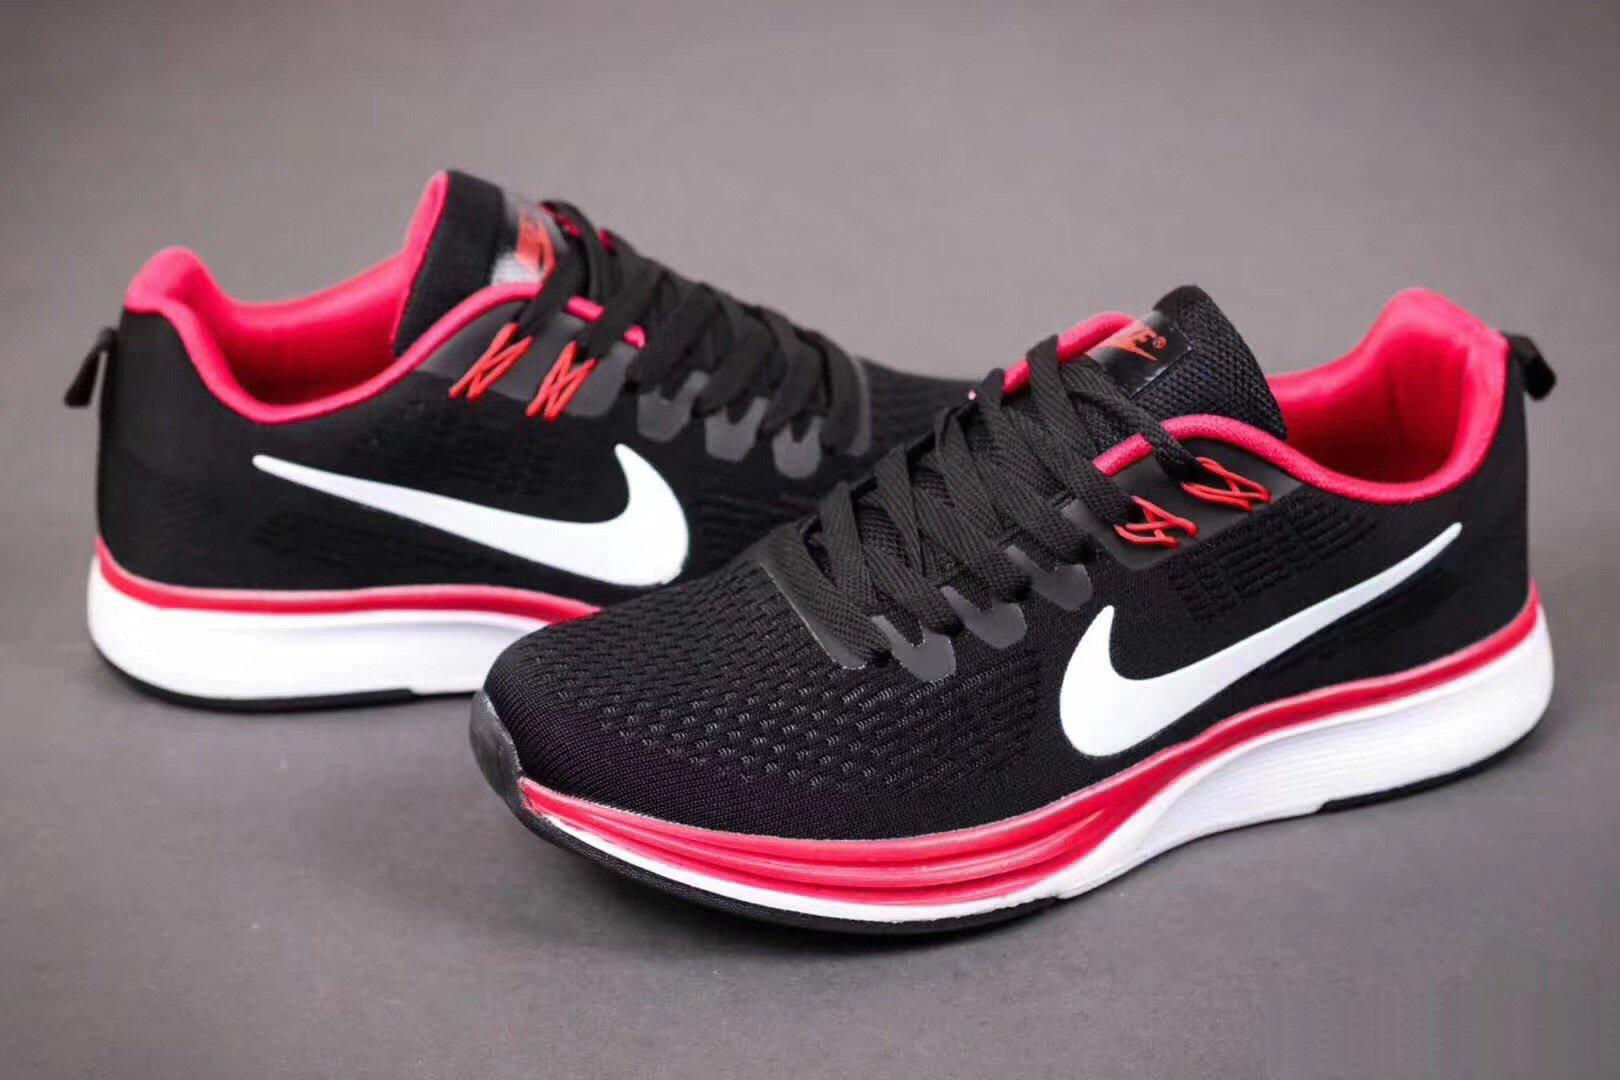 ... a few days away dbfb6 a6bf3 Trendsetter NIKE Zoom All Out Flyknit  Sneakers Casual Running Sport ... 878ad7bd5198